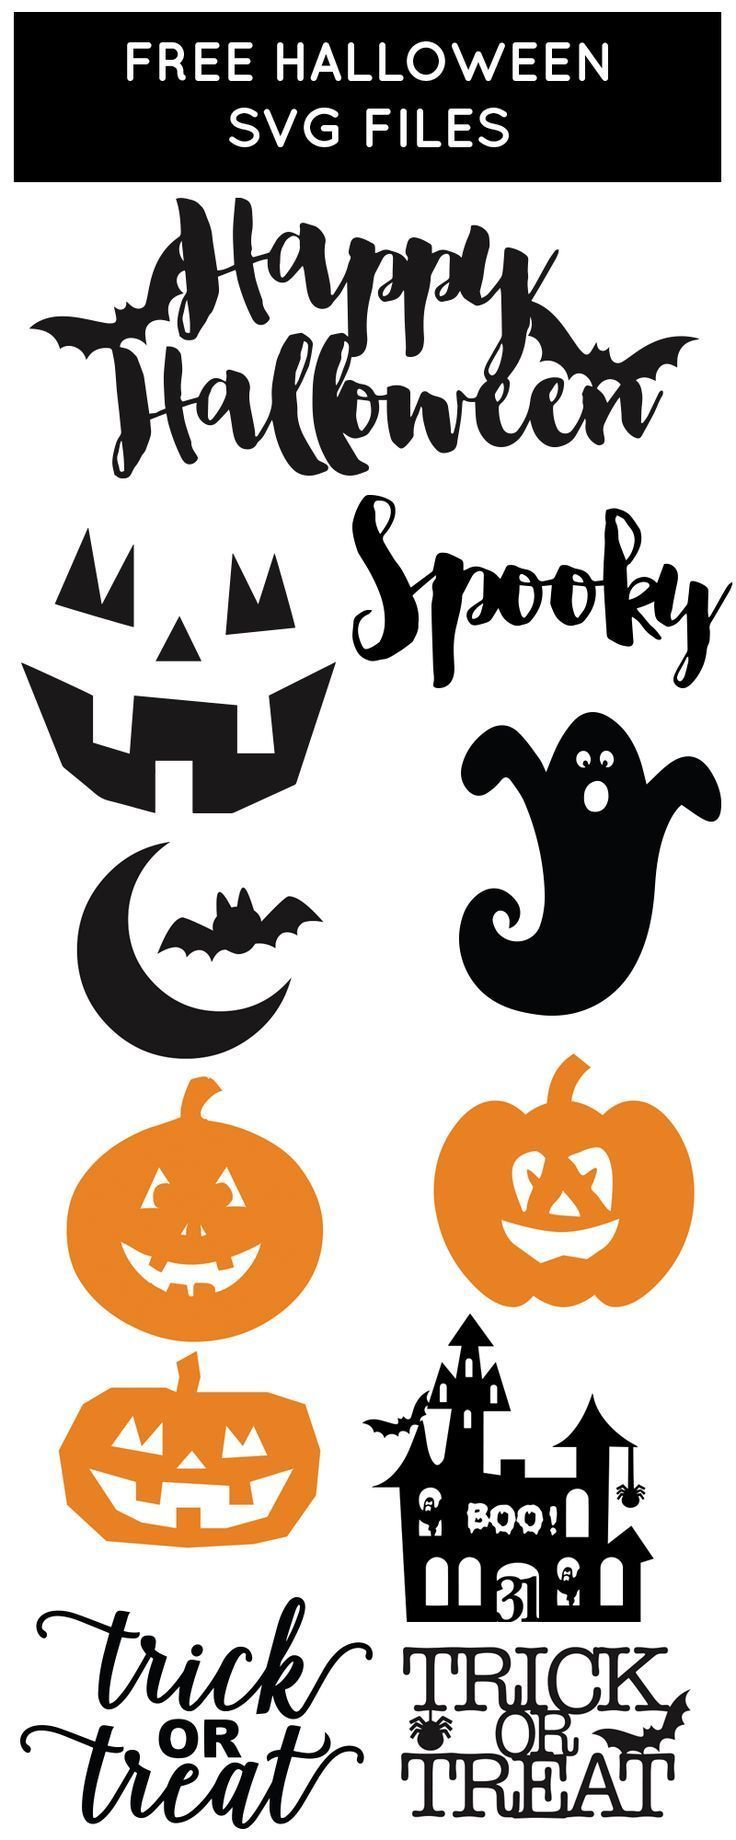 Free SVG Files for Halloween from @chicfetti